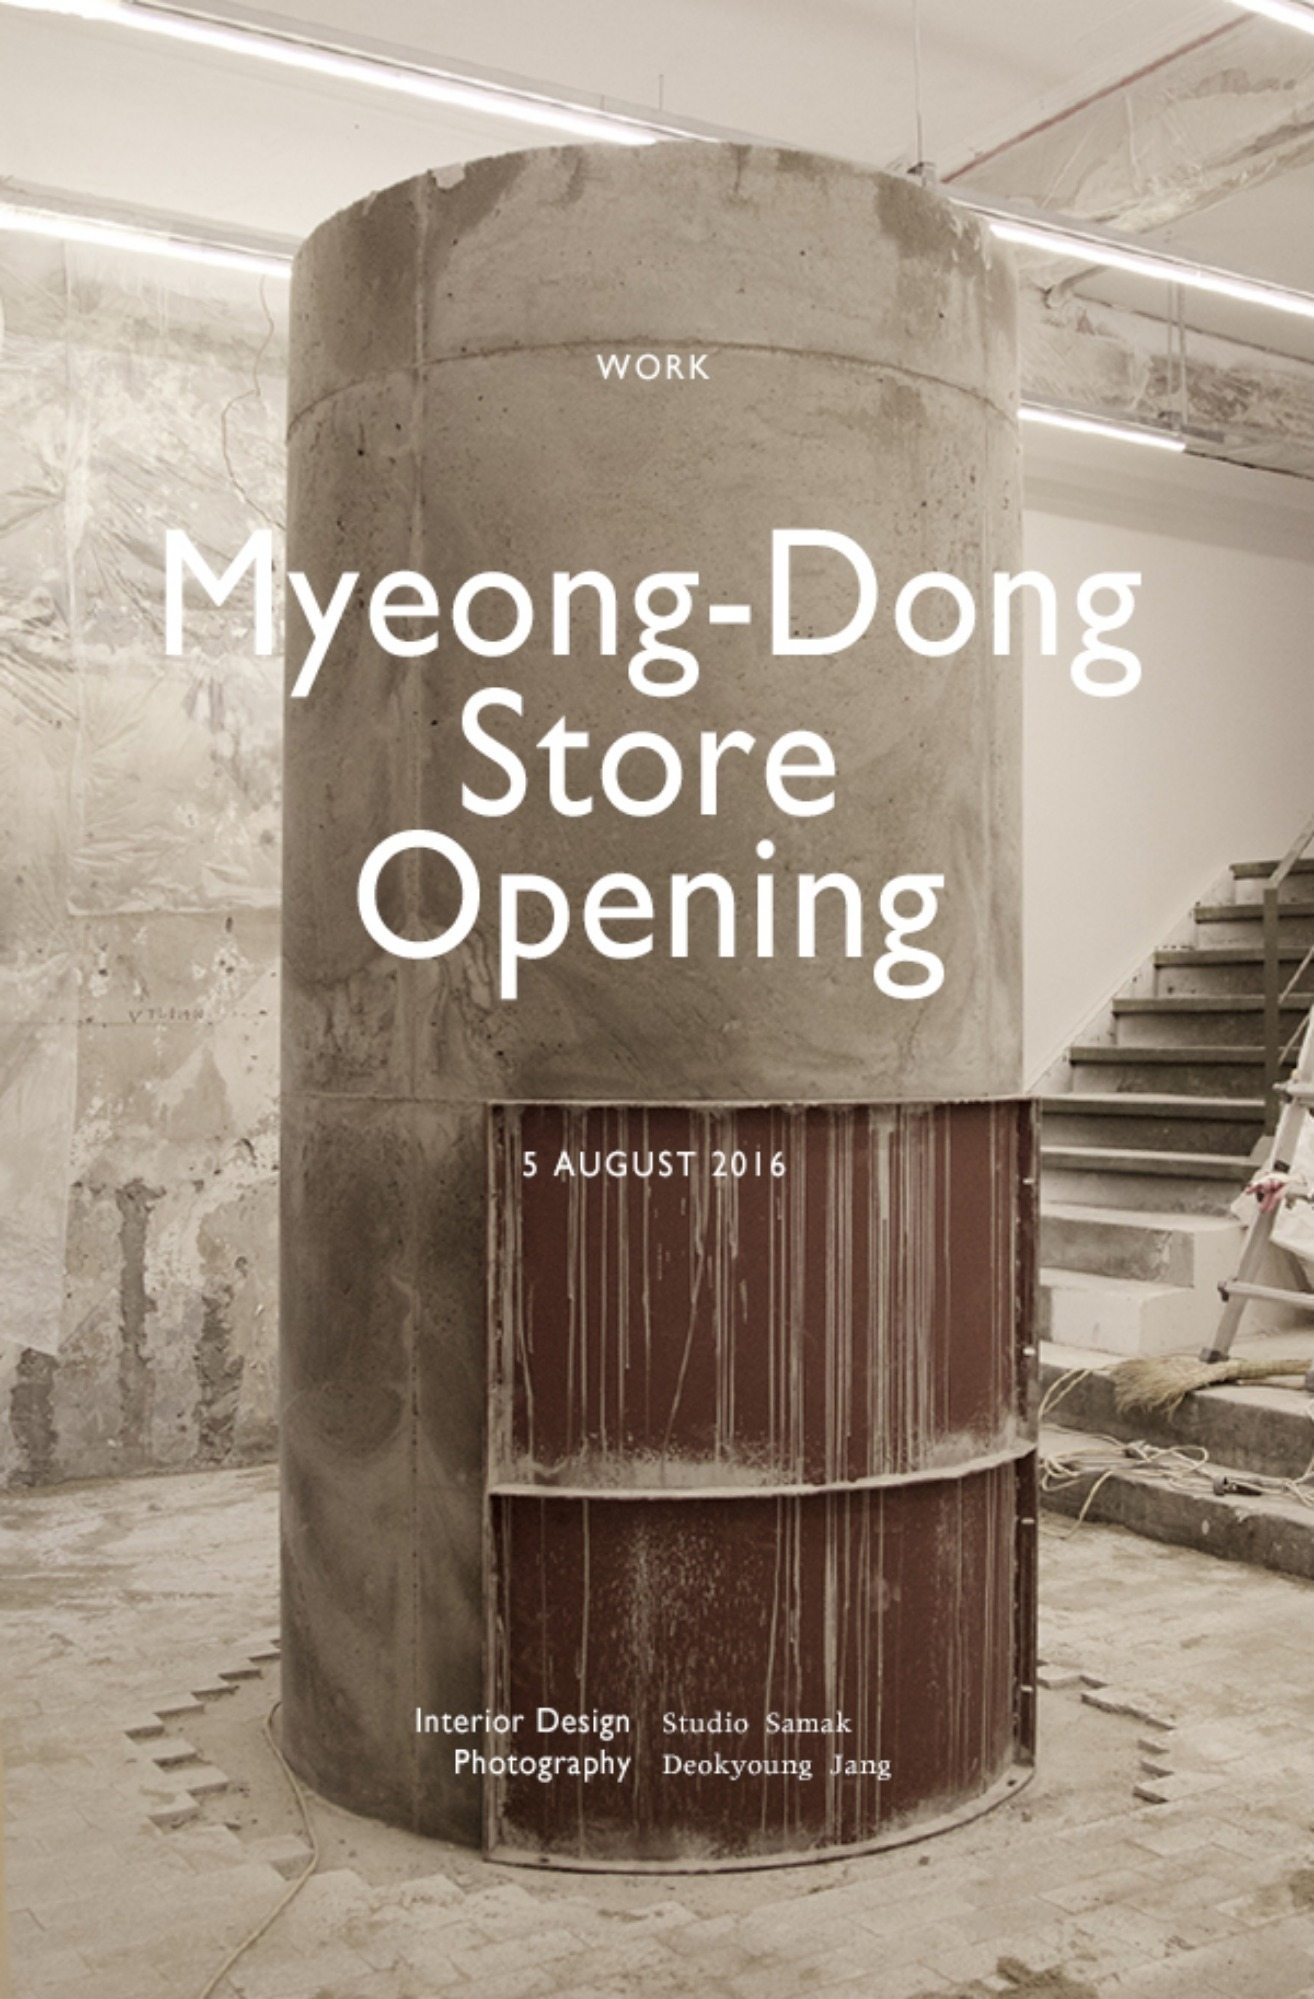 Myeong-Dong Store Opening